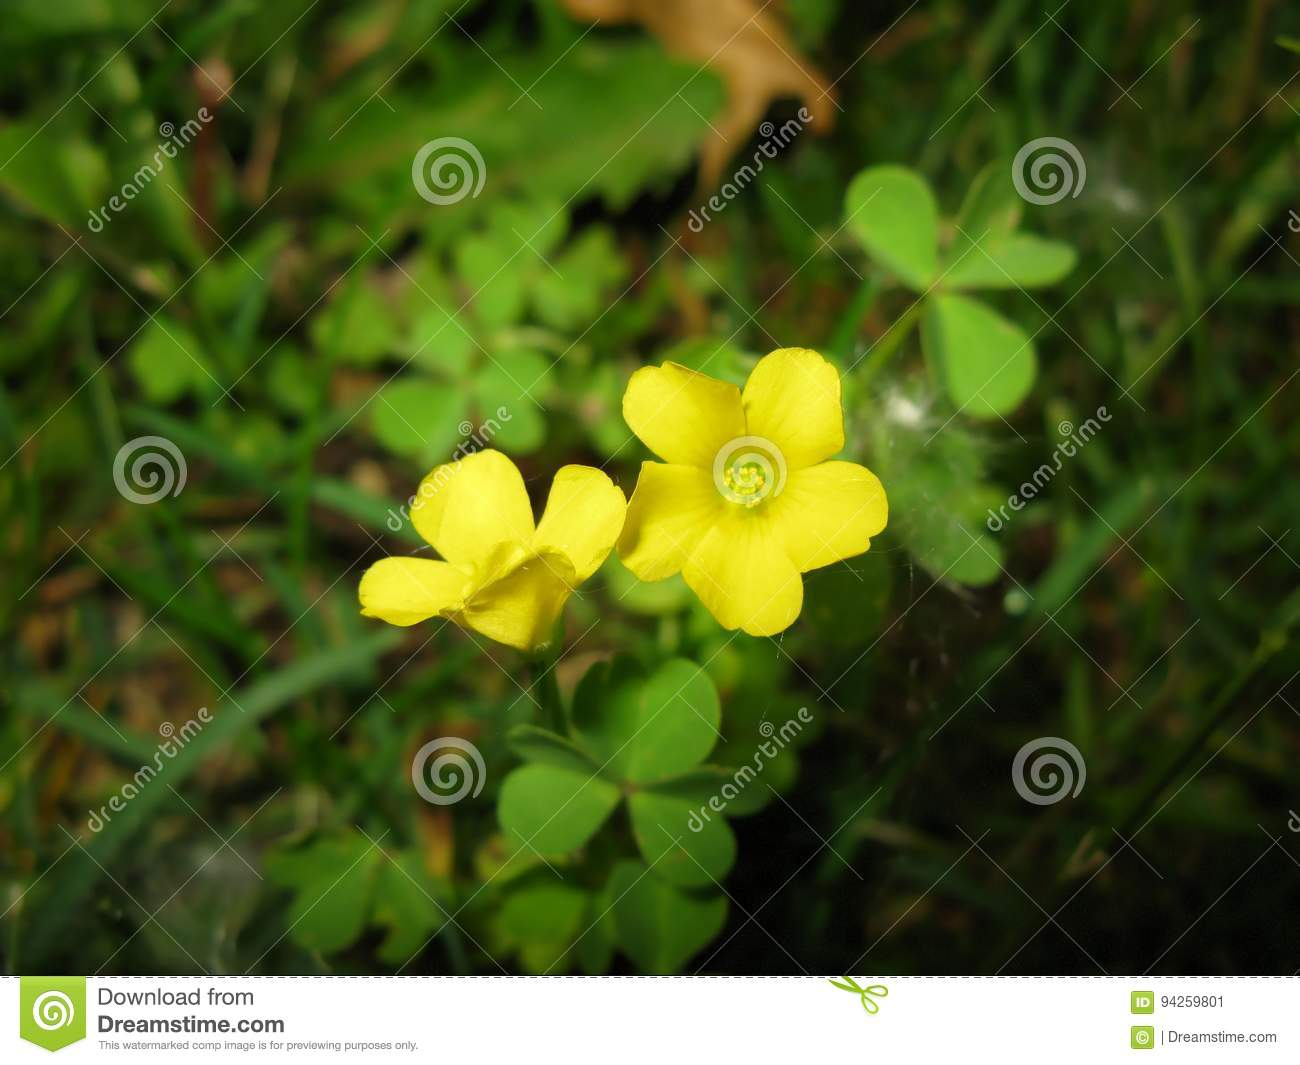 Two yellow clover flowers stock image image of blooming 94259801 two yellow clover flowers mightylinksfo